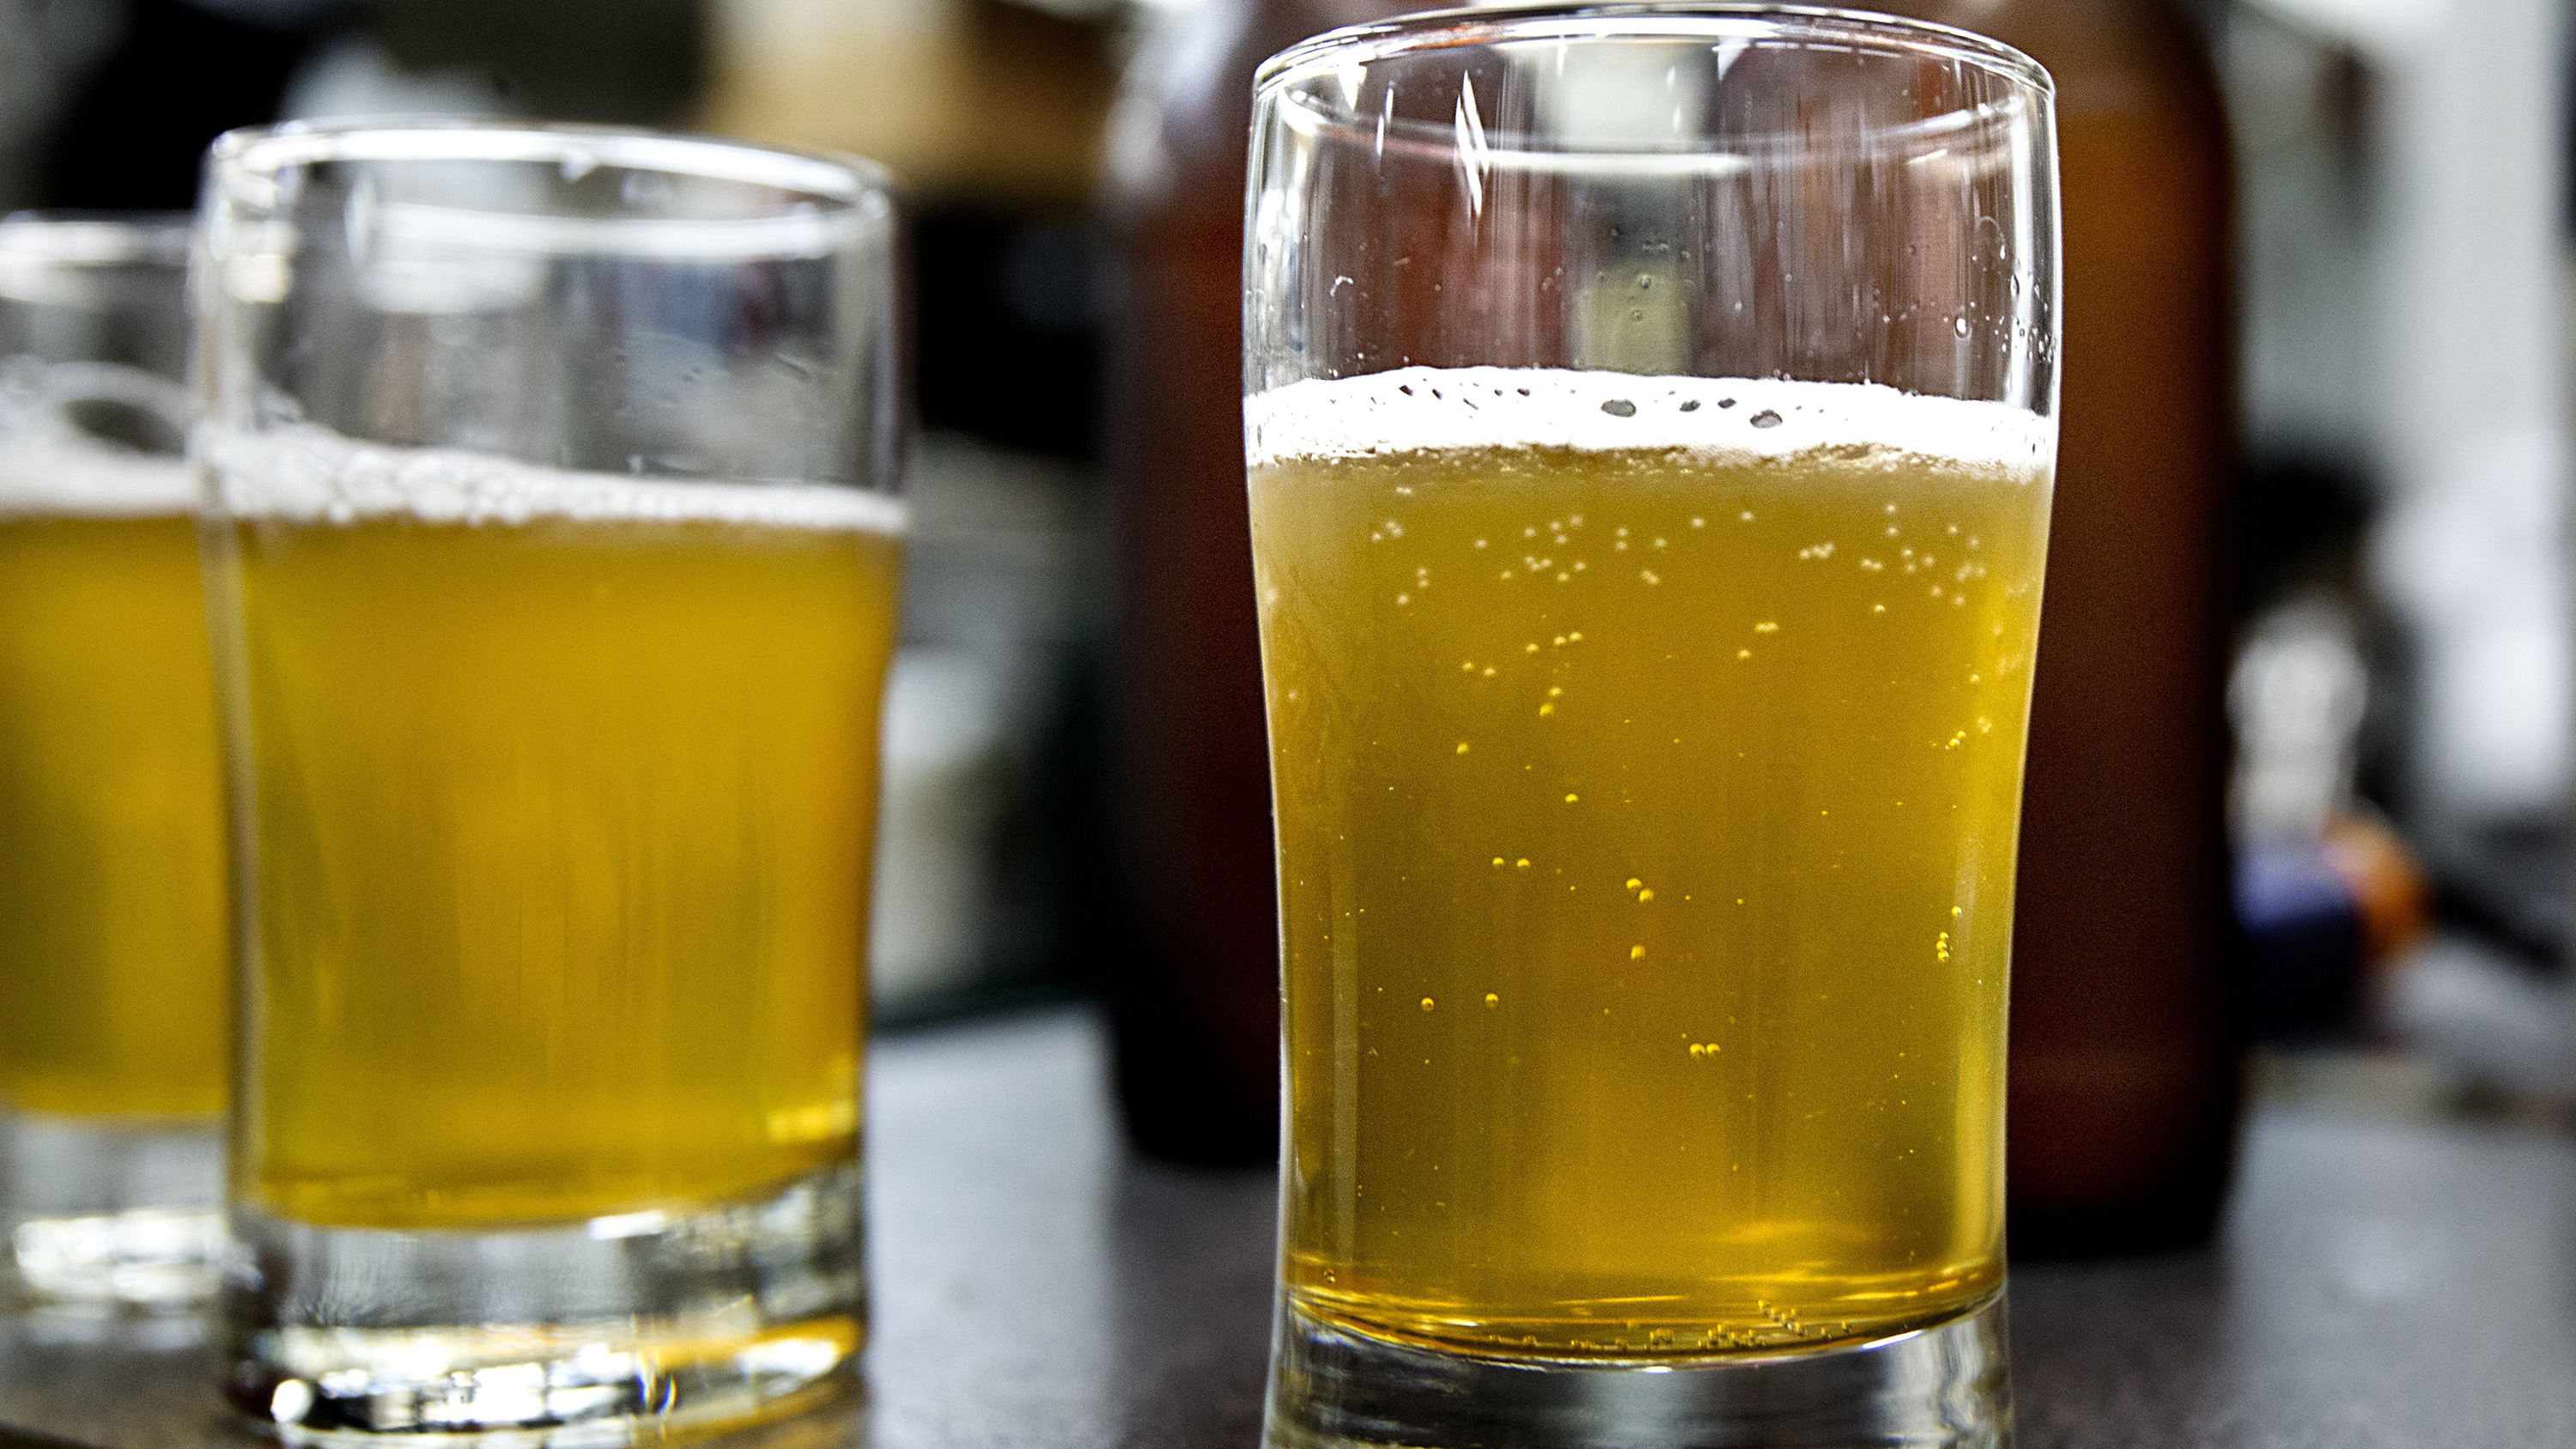 'Don't Be Mean' Beer: 36 N.C. Breweries Sign Up To Sell Brew Aimed At HB2